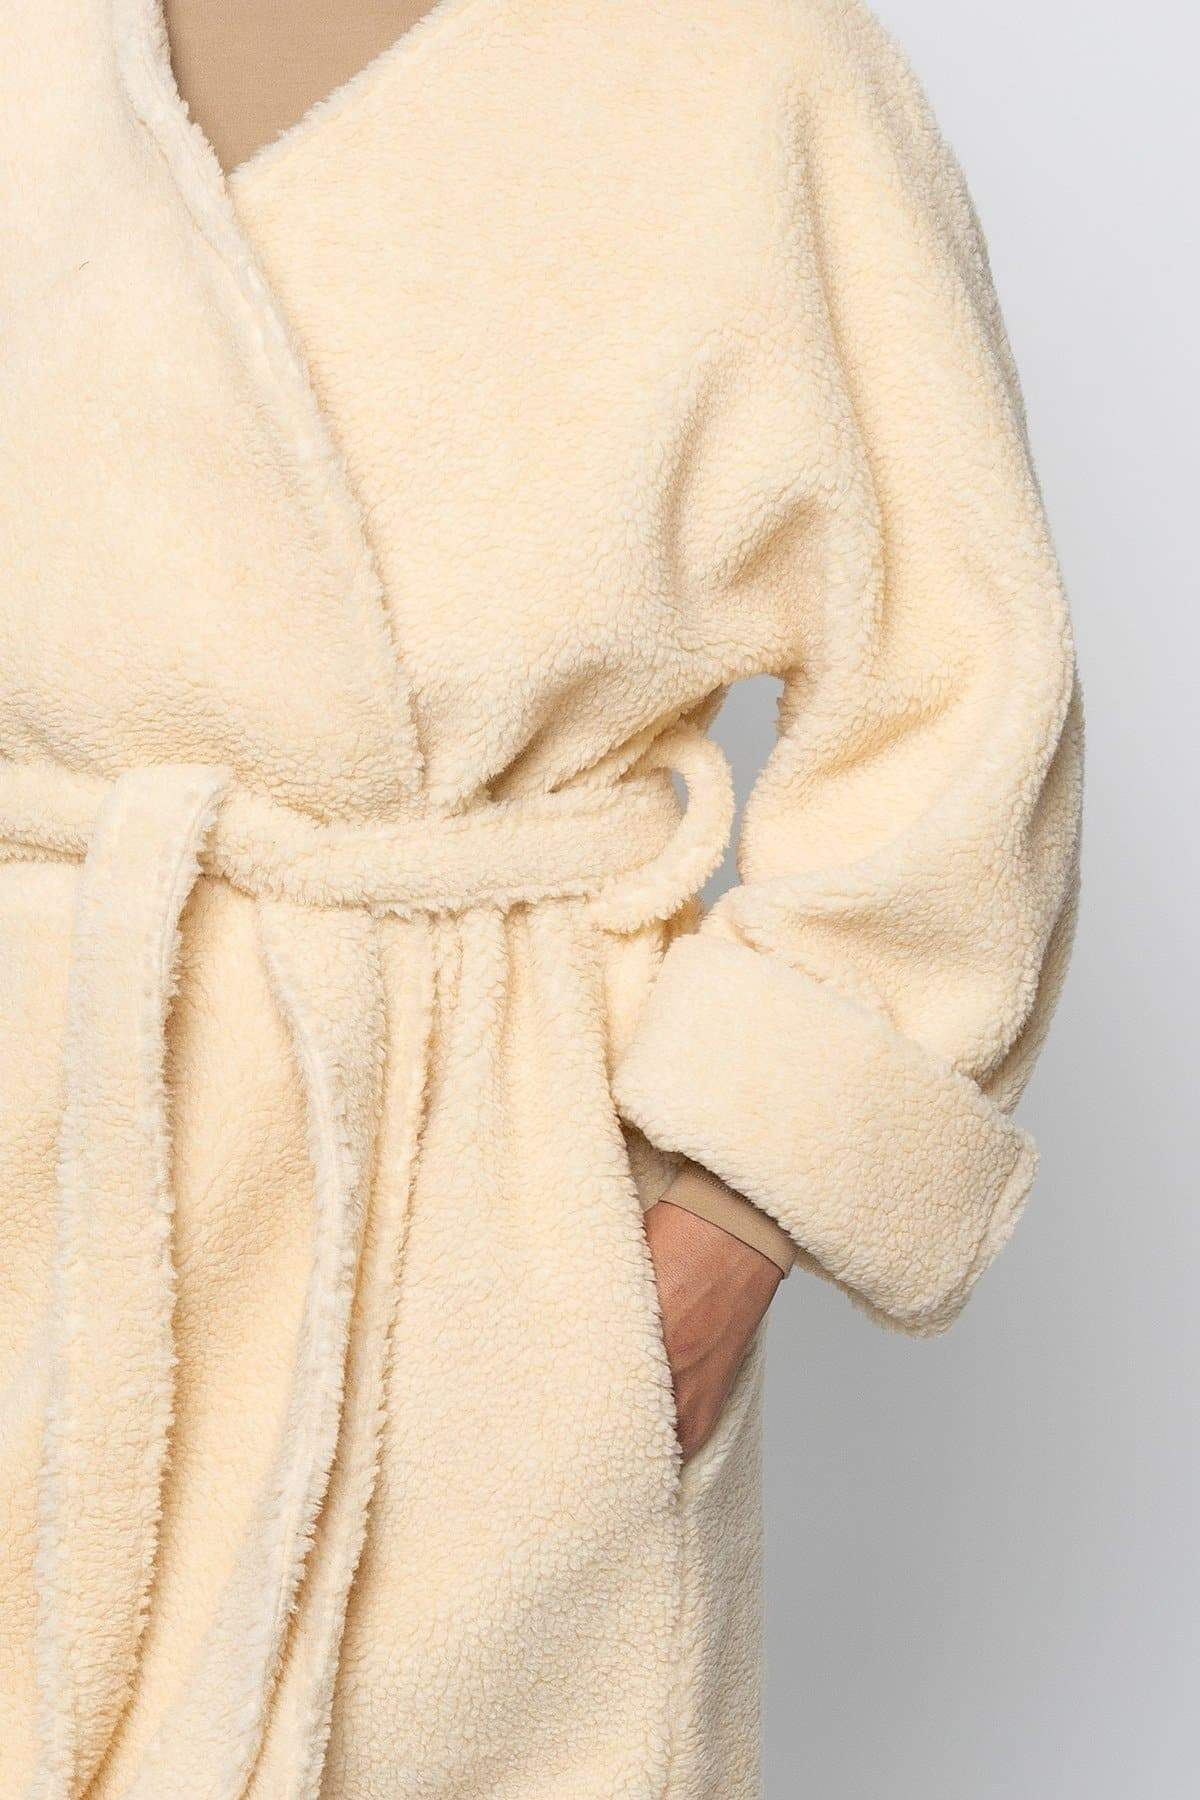 SHR312 - The Oversized Sherpa Wrap Coat